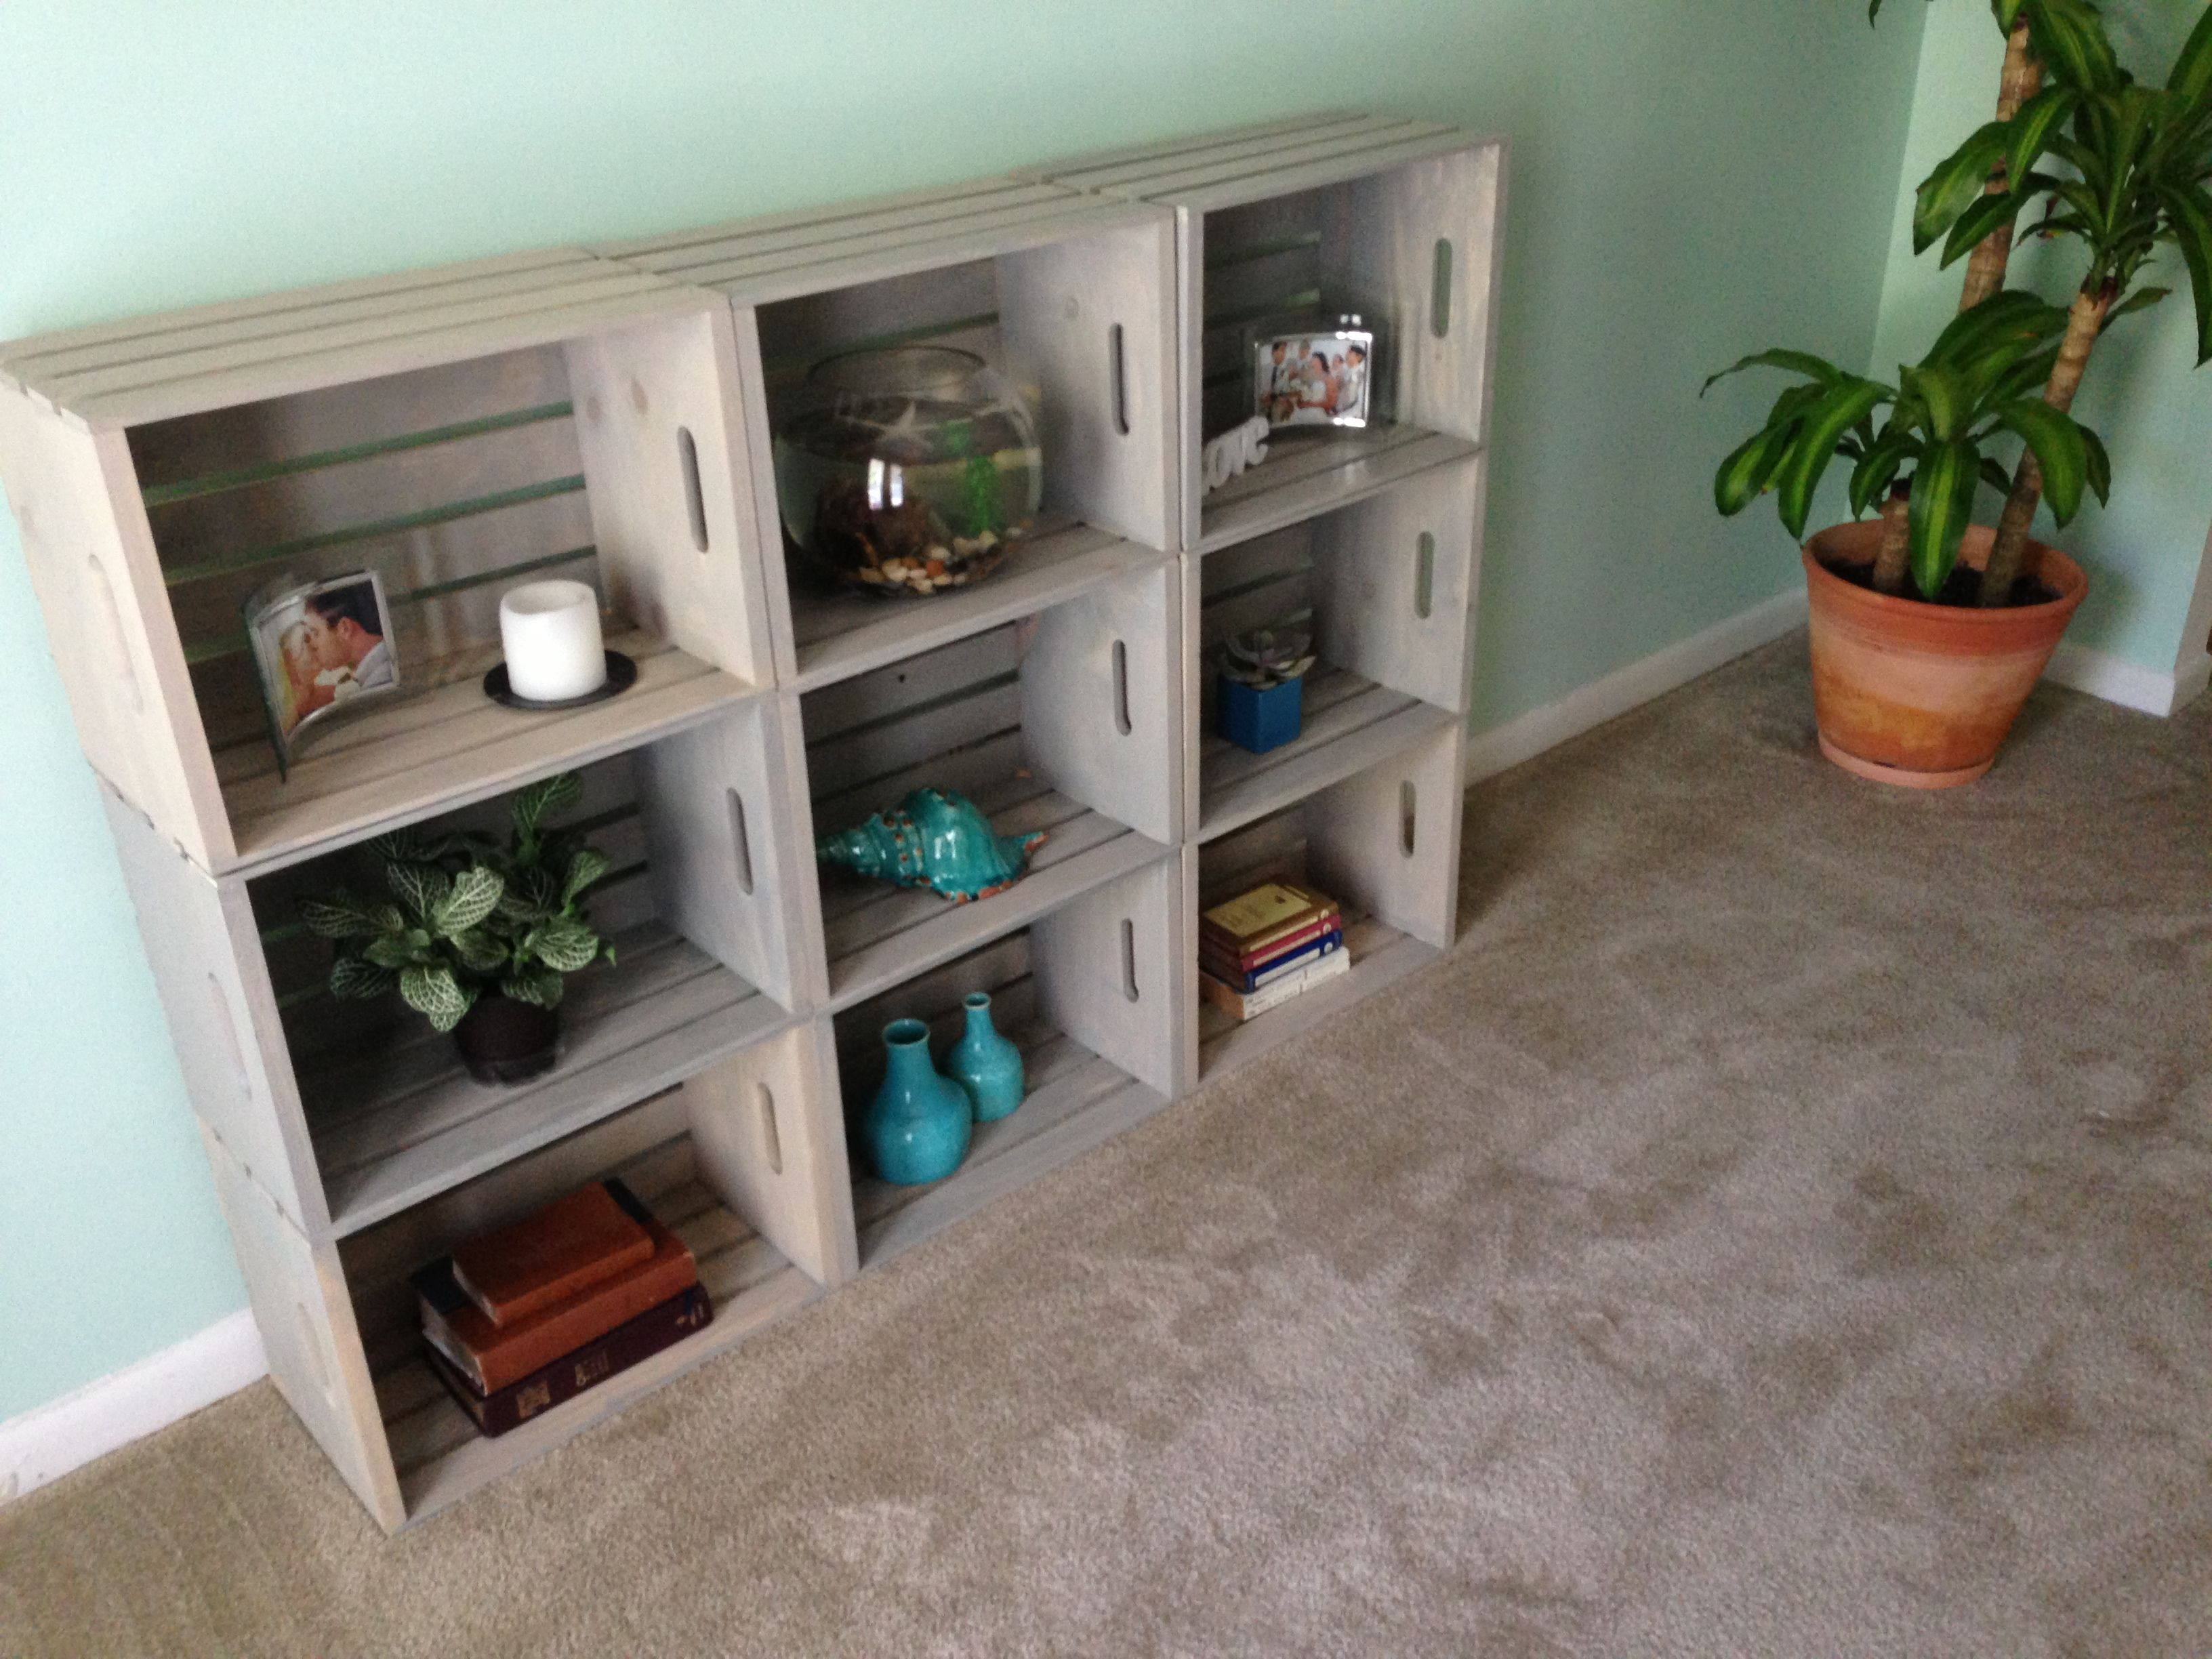 DIY Wooden Crate Bookshelf Stained With Driftwood Crates Were 899 From JoAnn Fabrics